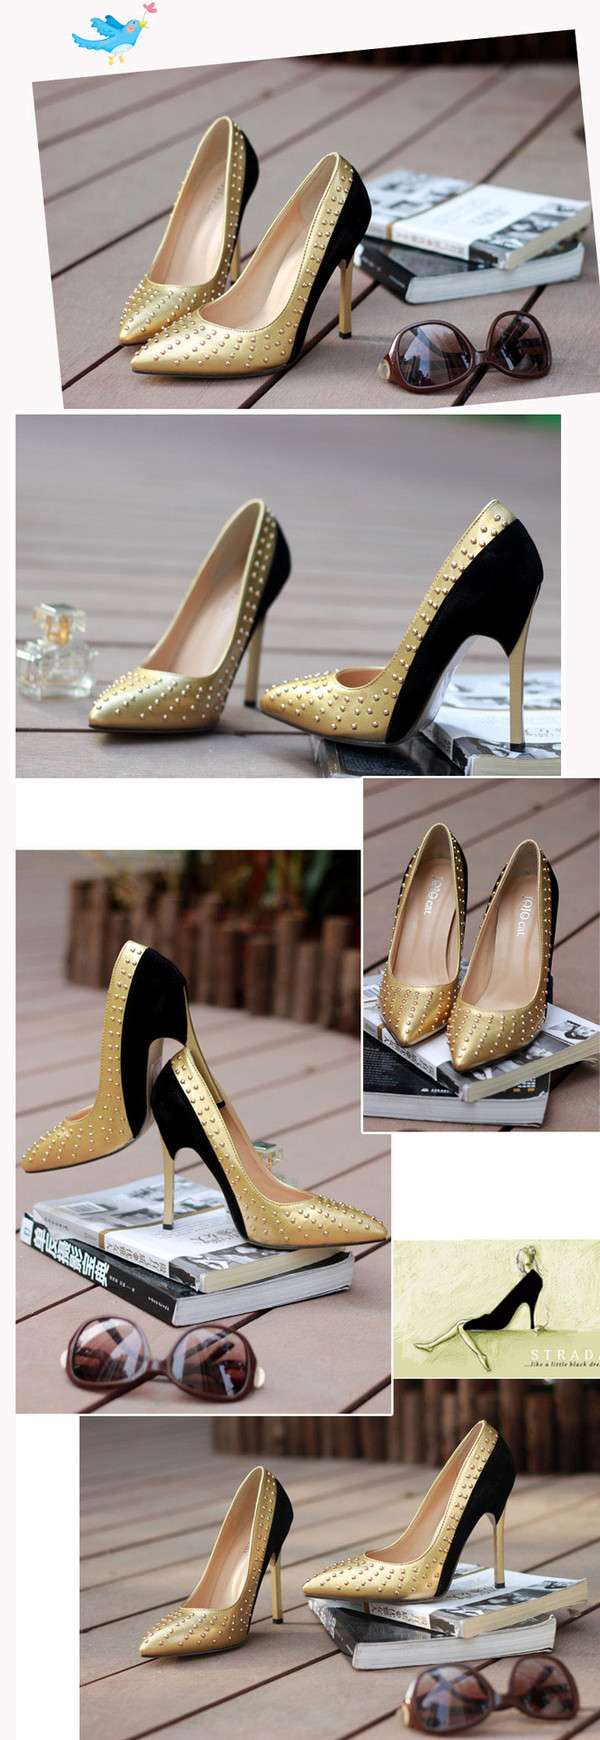 shoes heels persunmall high heels persunmall shoes